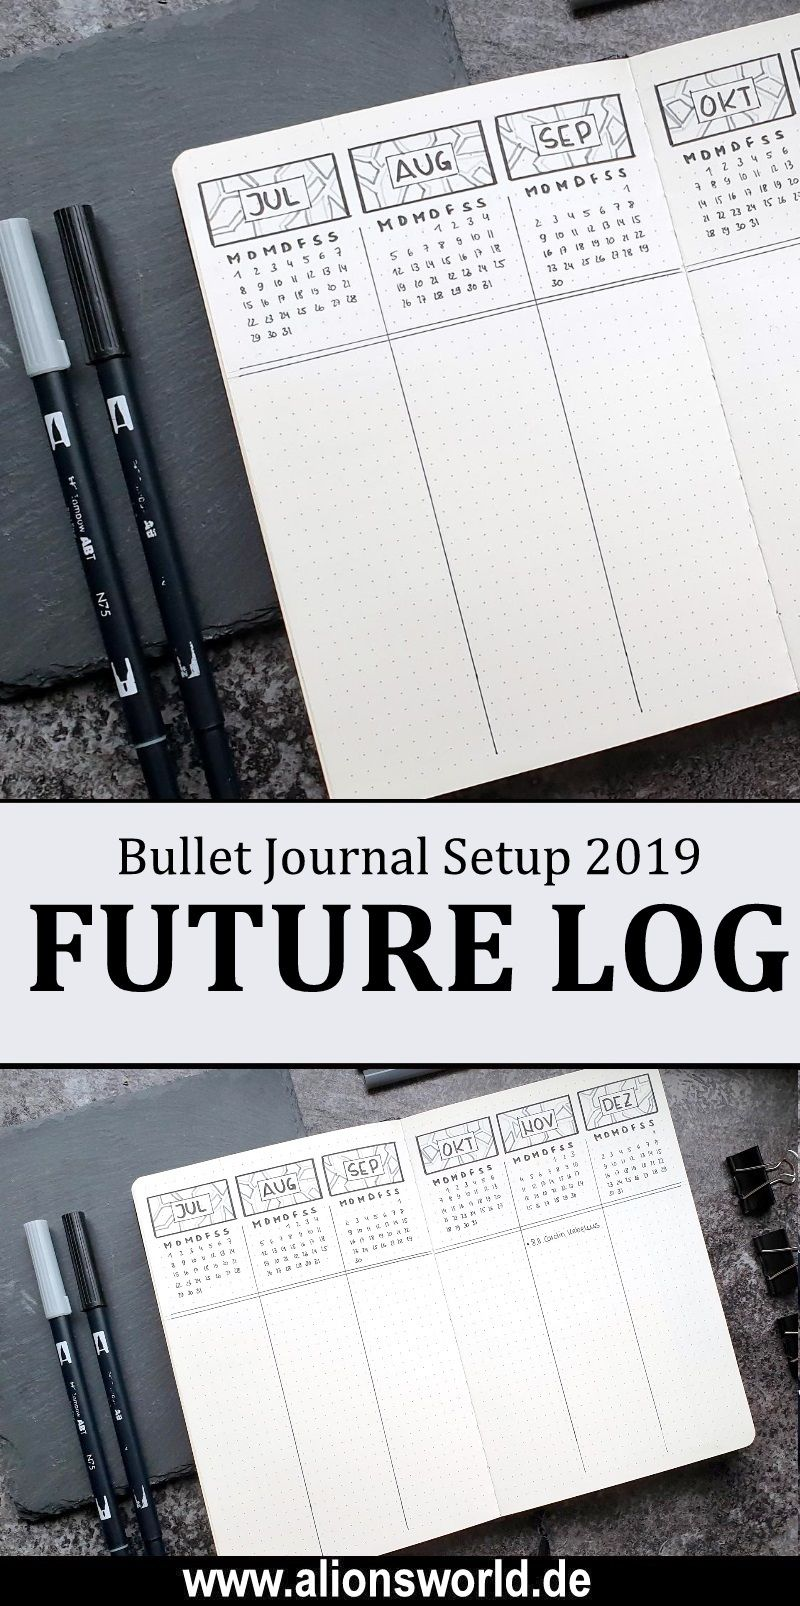 Bullet Journal 2019 - Future Log #augustbulletjournal